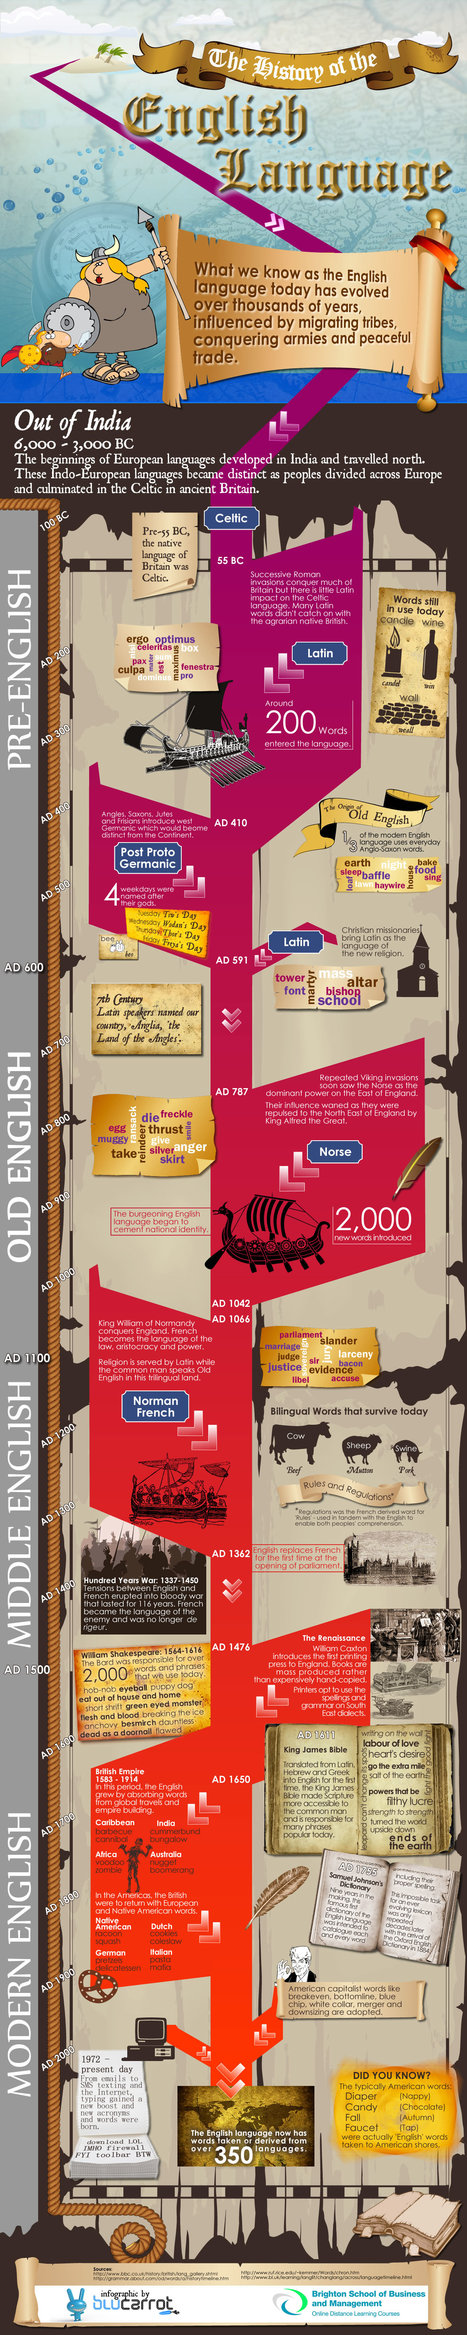 The History of the English Language: Infographic | TEFL & Ed Tech | Scoop.it